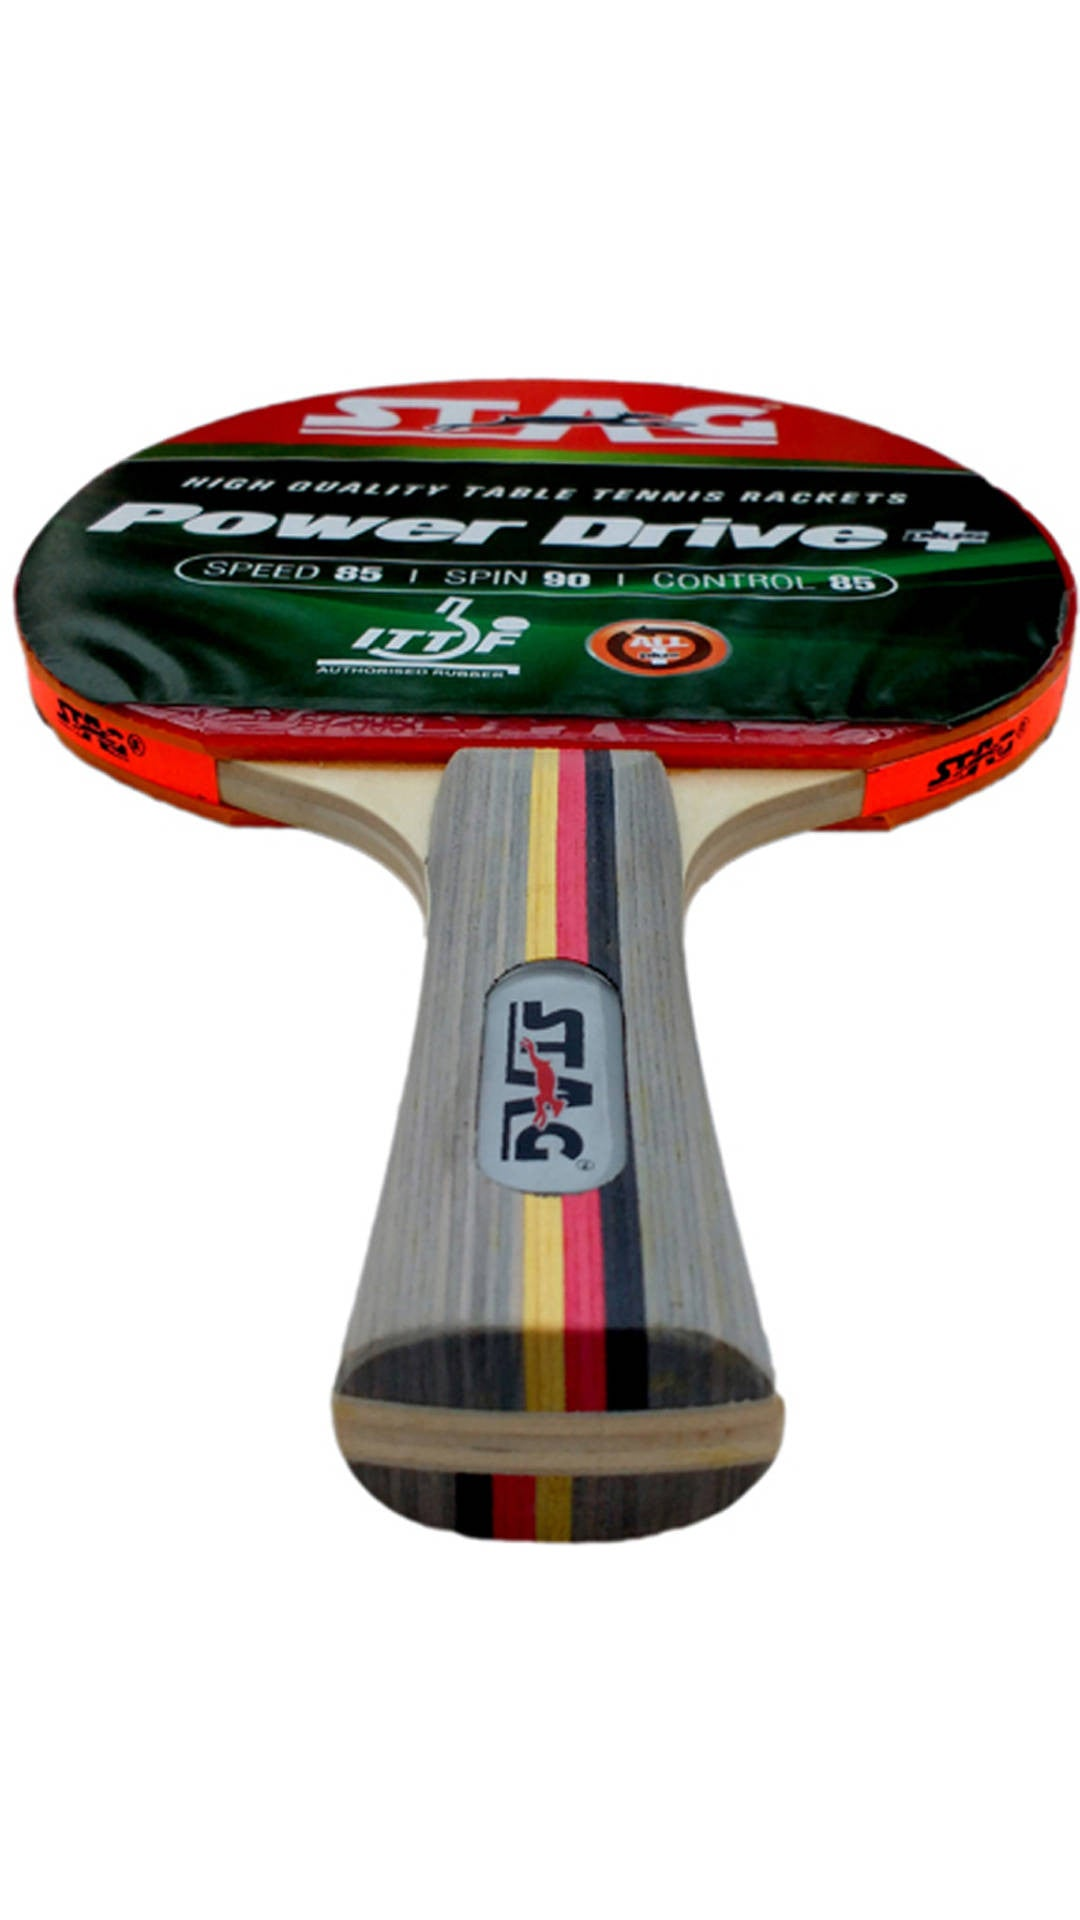 Stag Power Drive Table Tennis Racquet with Case - Ayudh Sports LLP  - 3